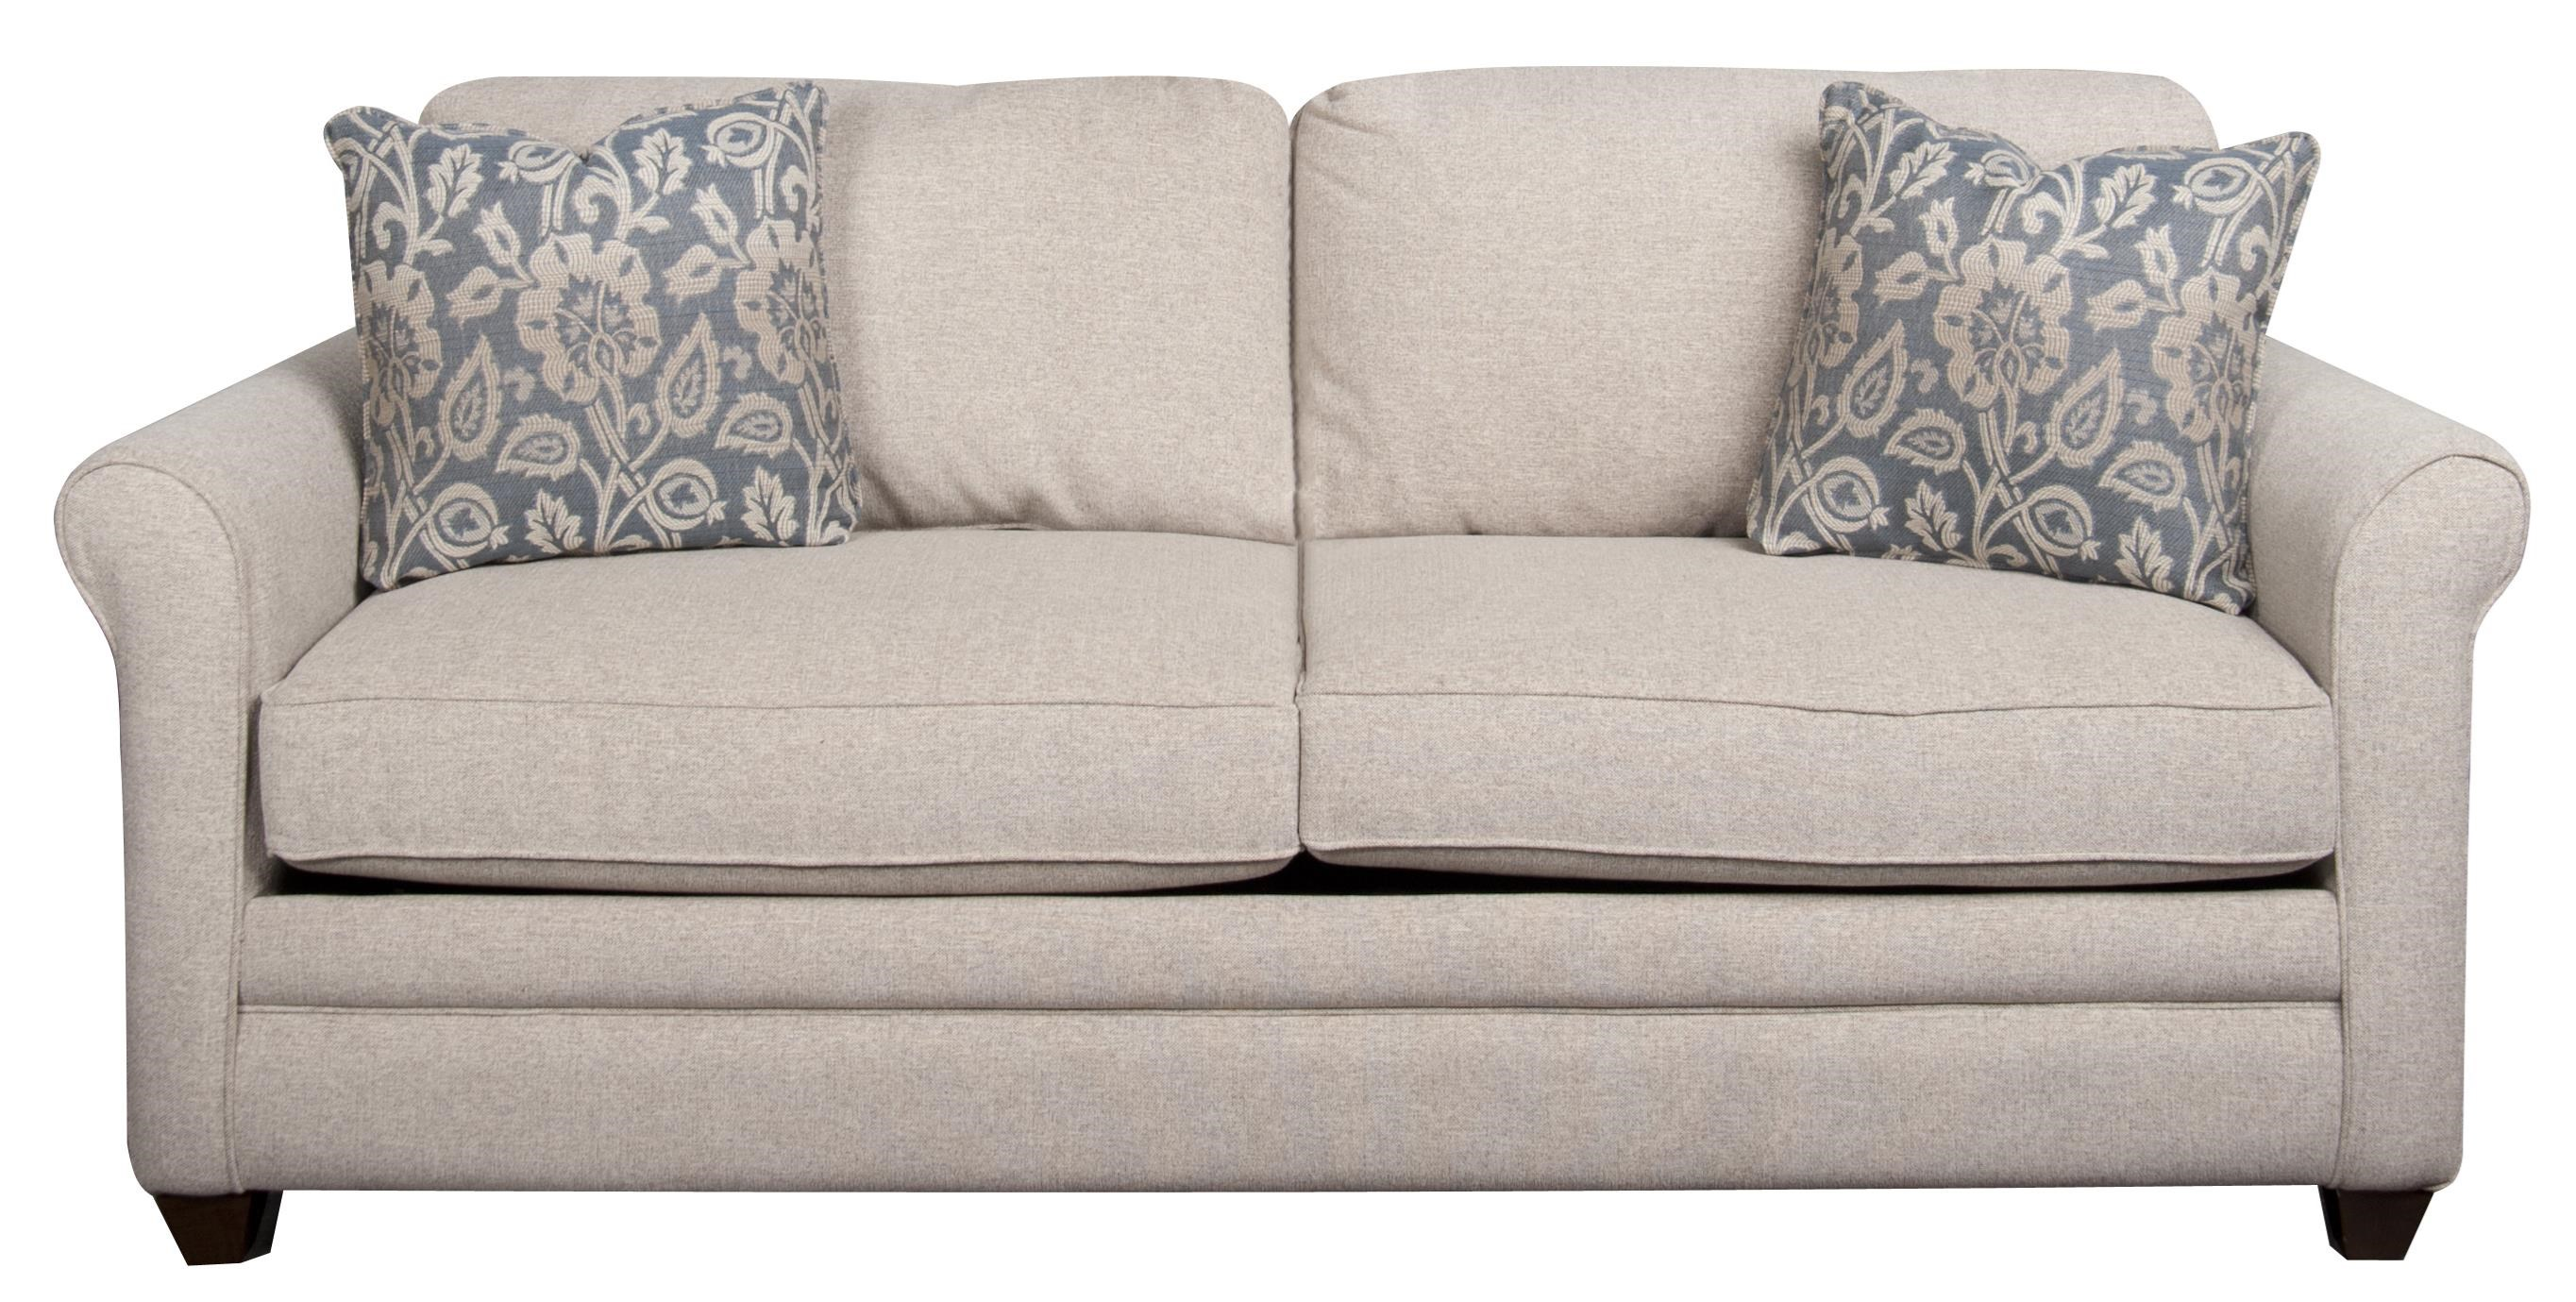 Elliston Place Mackenna Mackenna Queen Sofa Sleeper - Item Number: 601028702